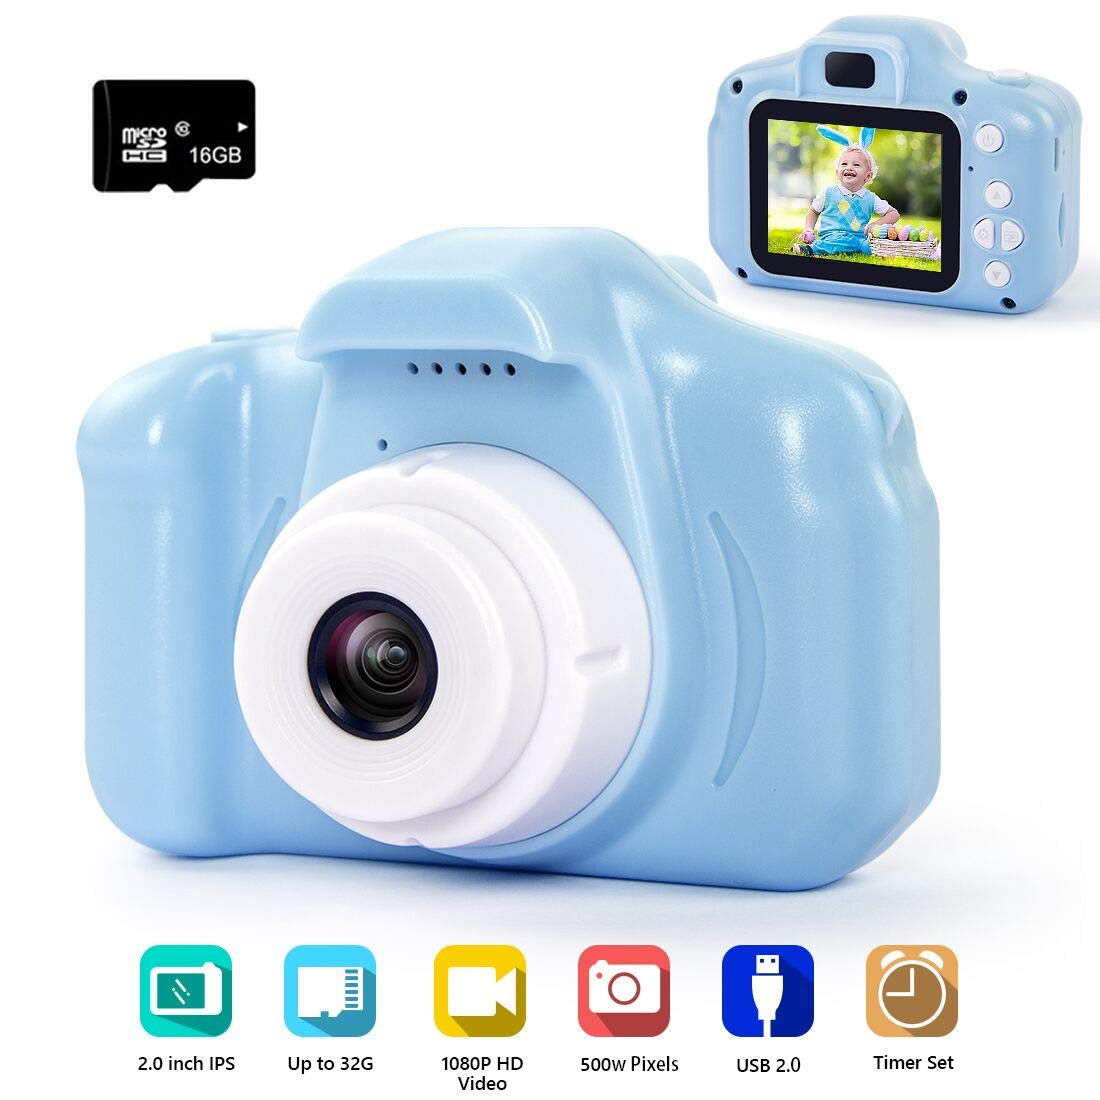 hyleton Digital Camera for Kids, 1080P 5MP HD Kids Digital Video Camera with 2 inch IPS Screen and 16GB SD Card (Light Blue)